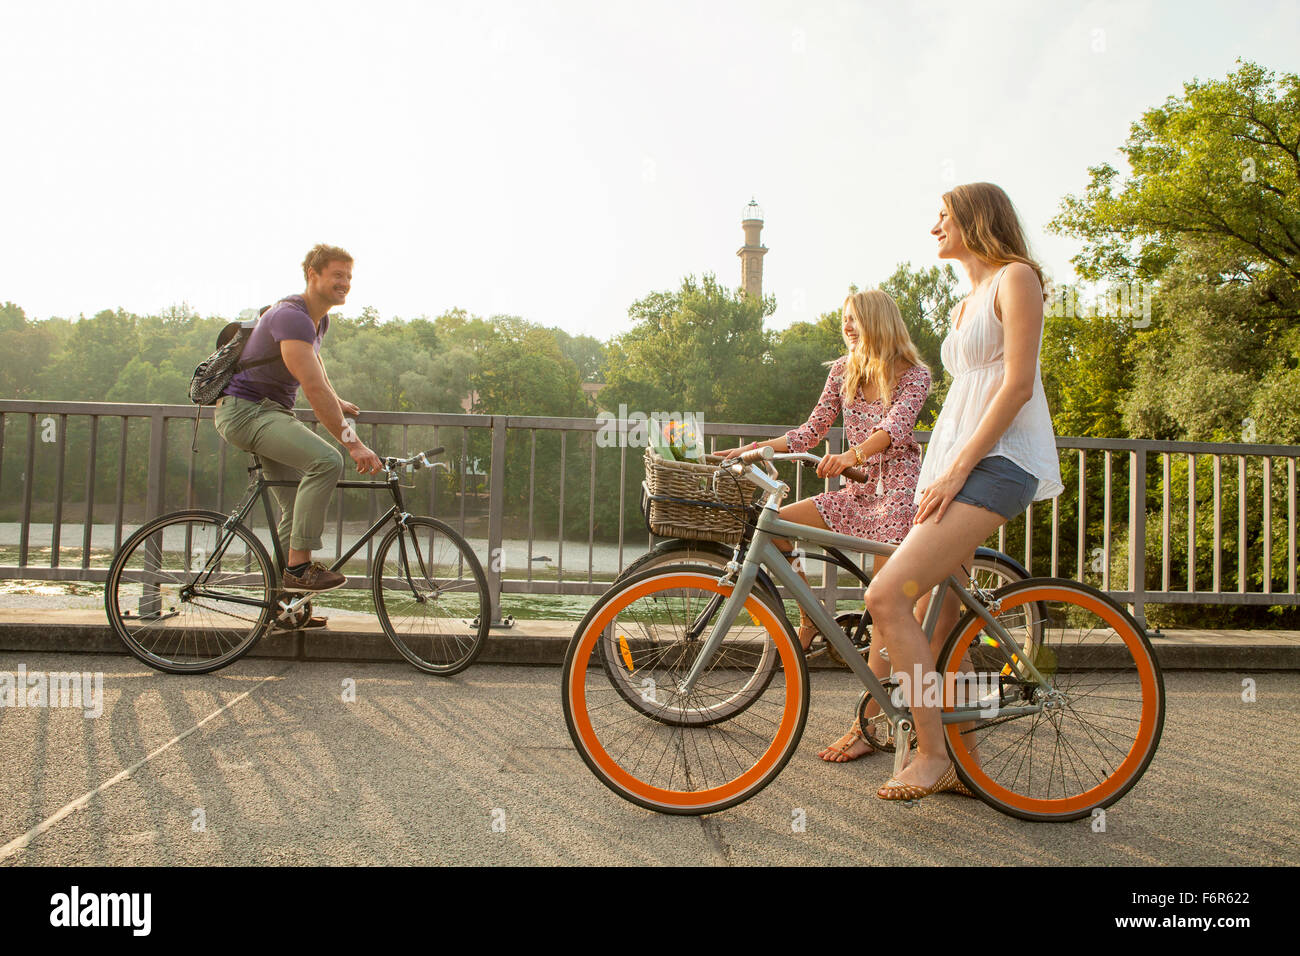 Group of friends riding bicycle on city bridge Stock Photo